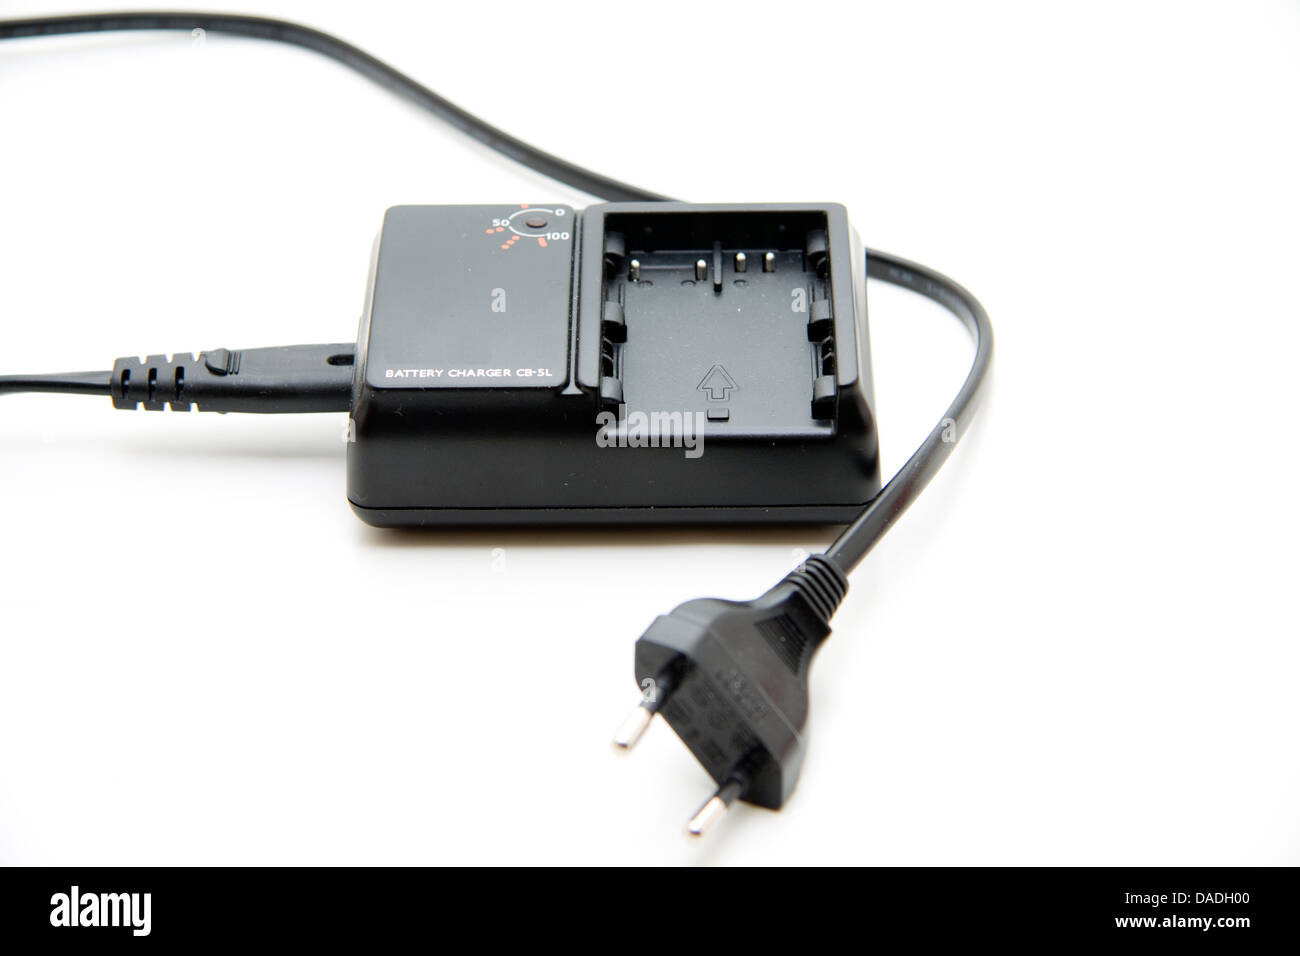 Battery charger for accumulator - Stock Image